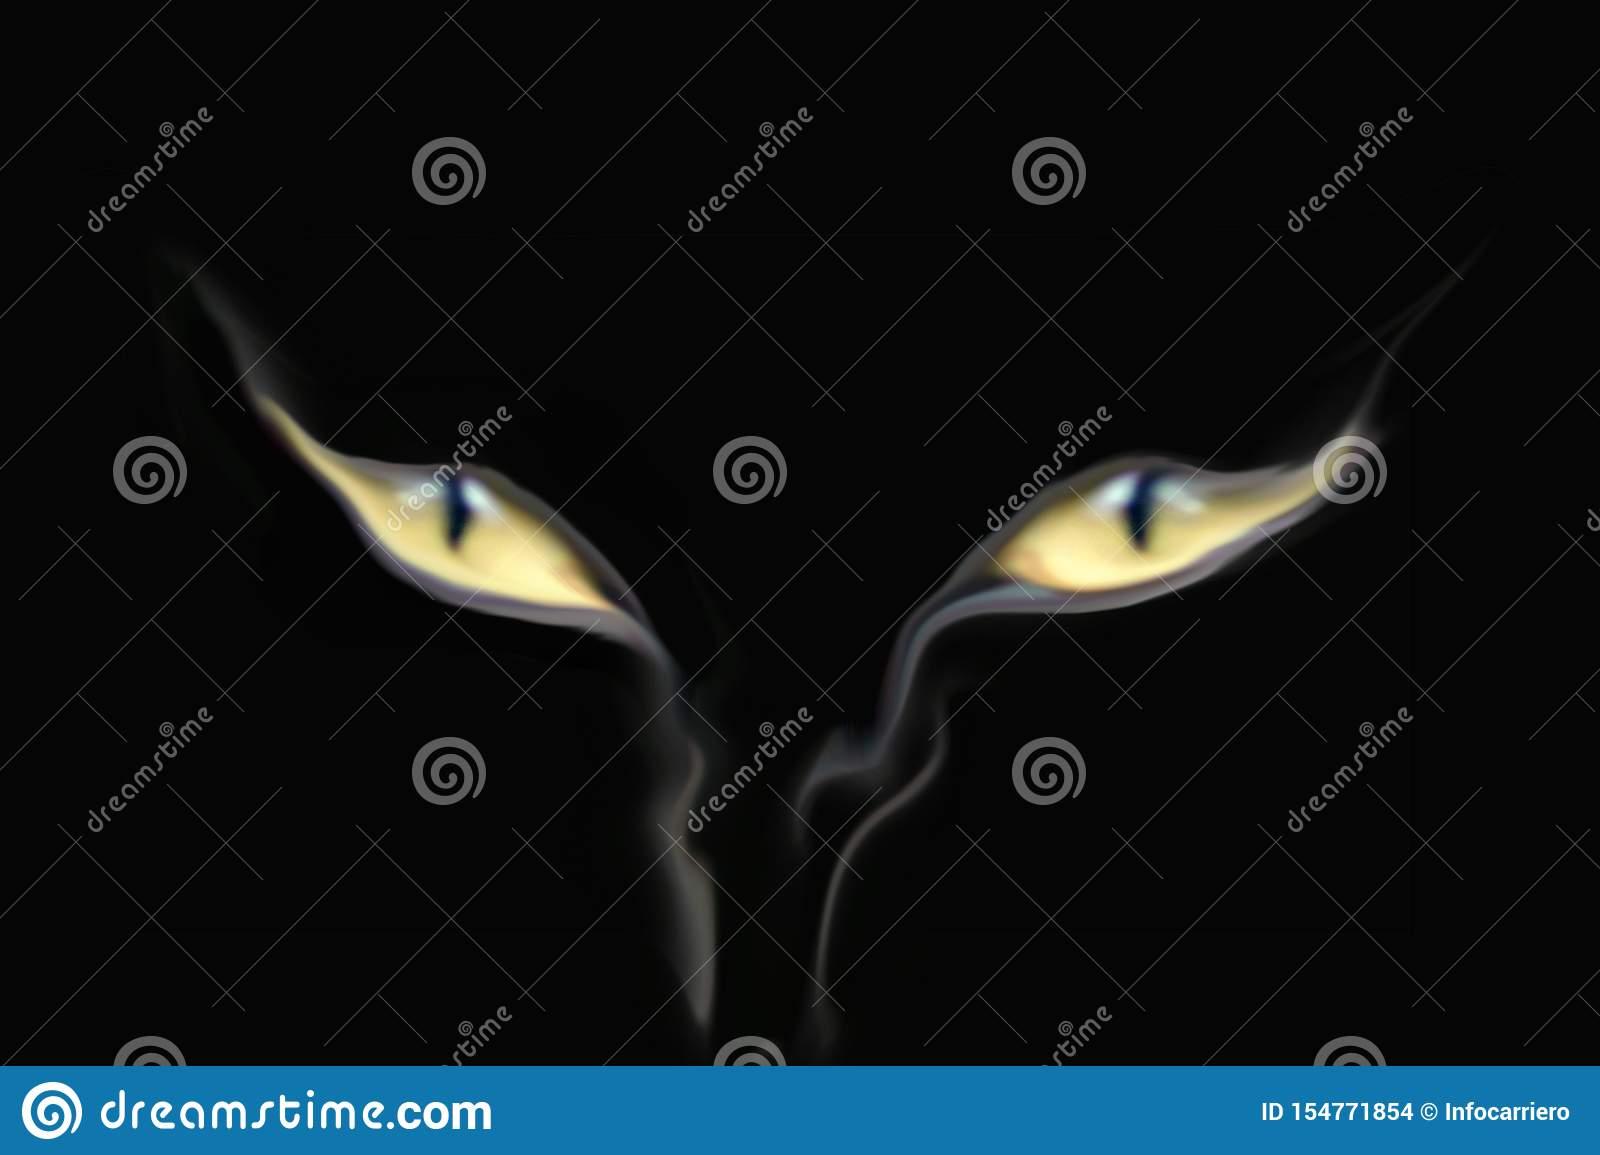 Cat`s eyes appeared from the smoke that from the bottom goes up. logo.